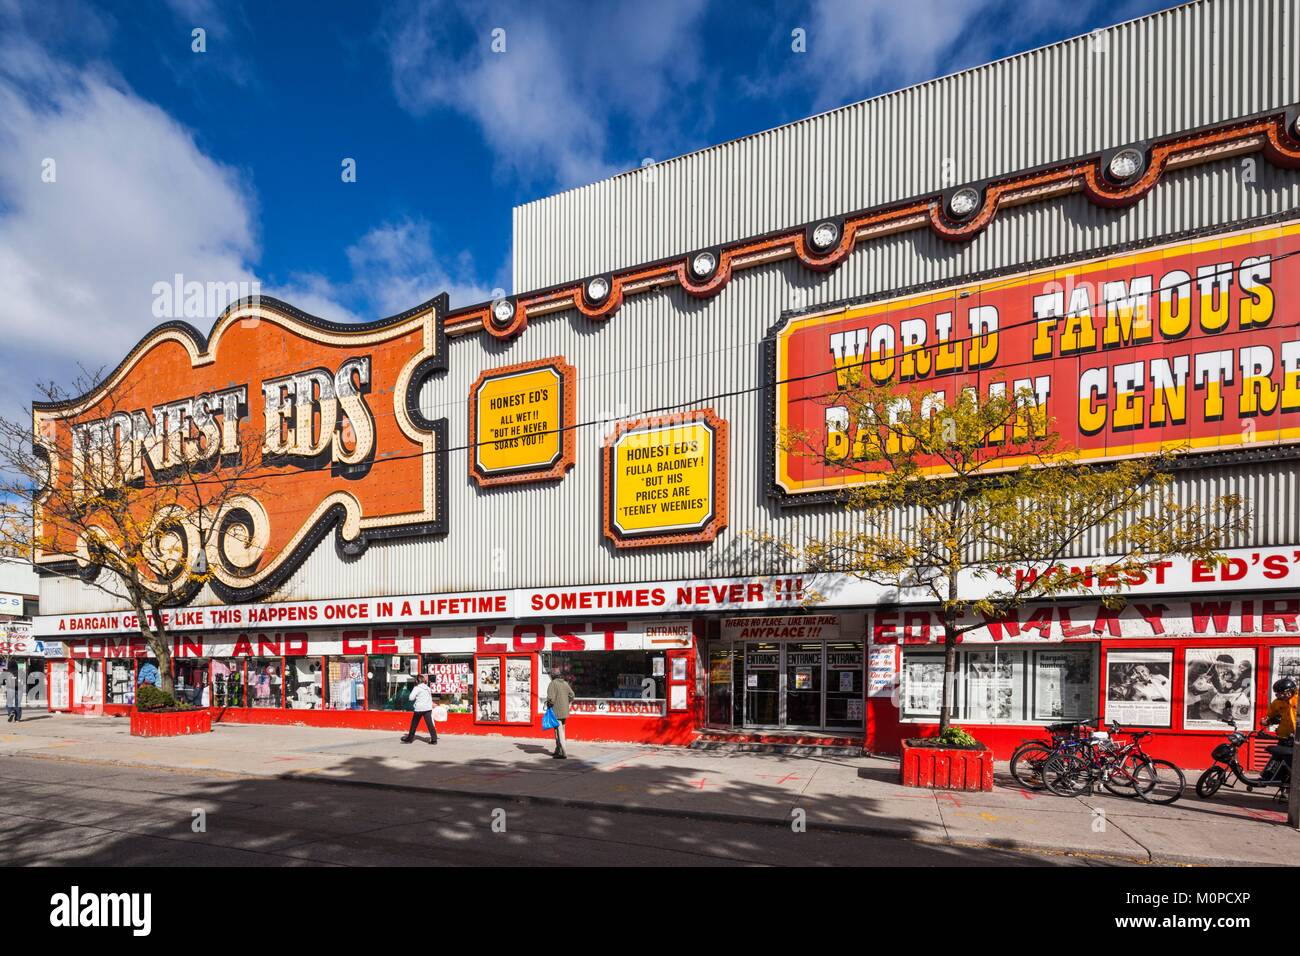 Canada,Ontario,Toronto,Honest Eds,famous store on Bloor Street West - Stock Image